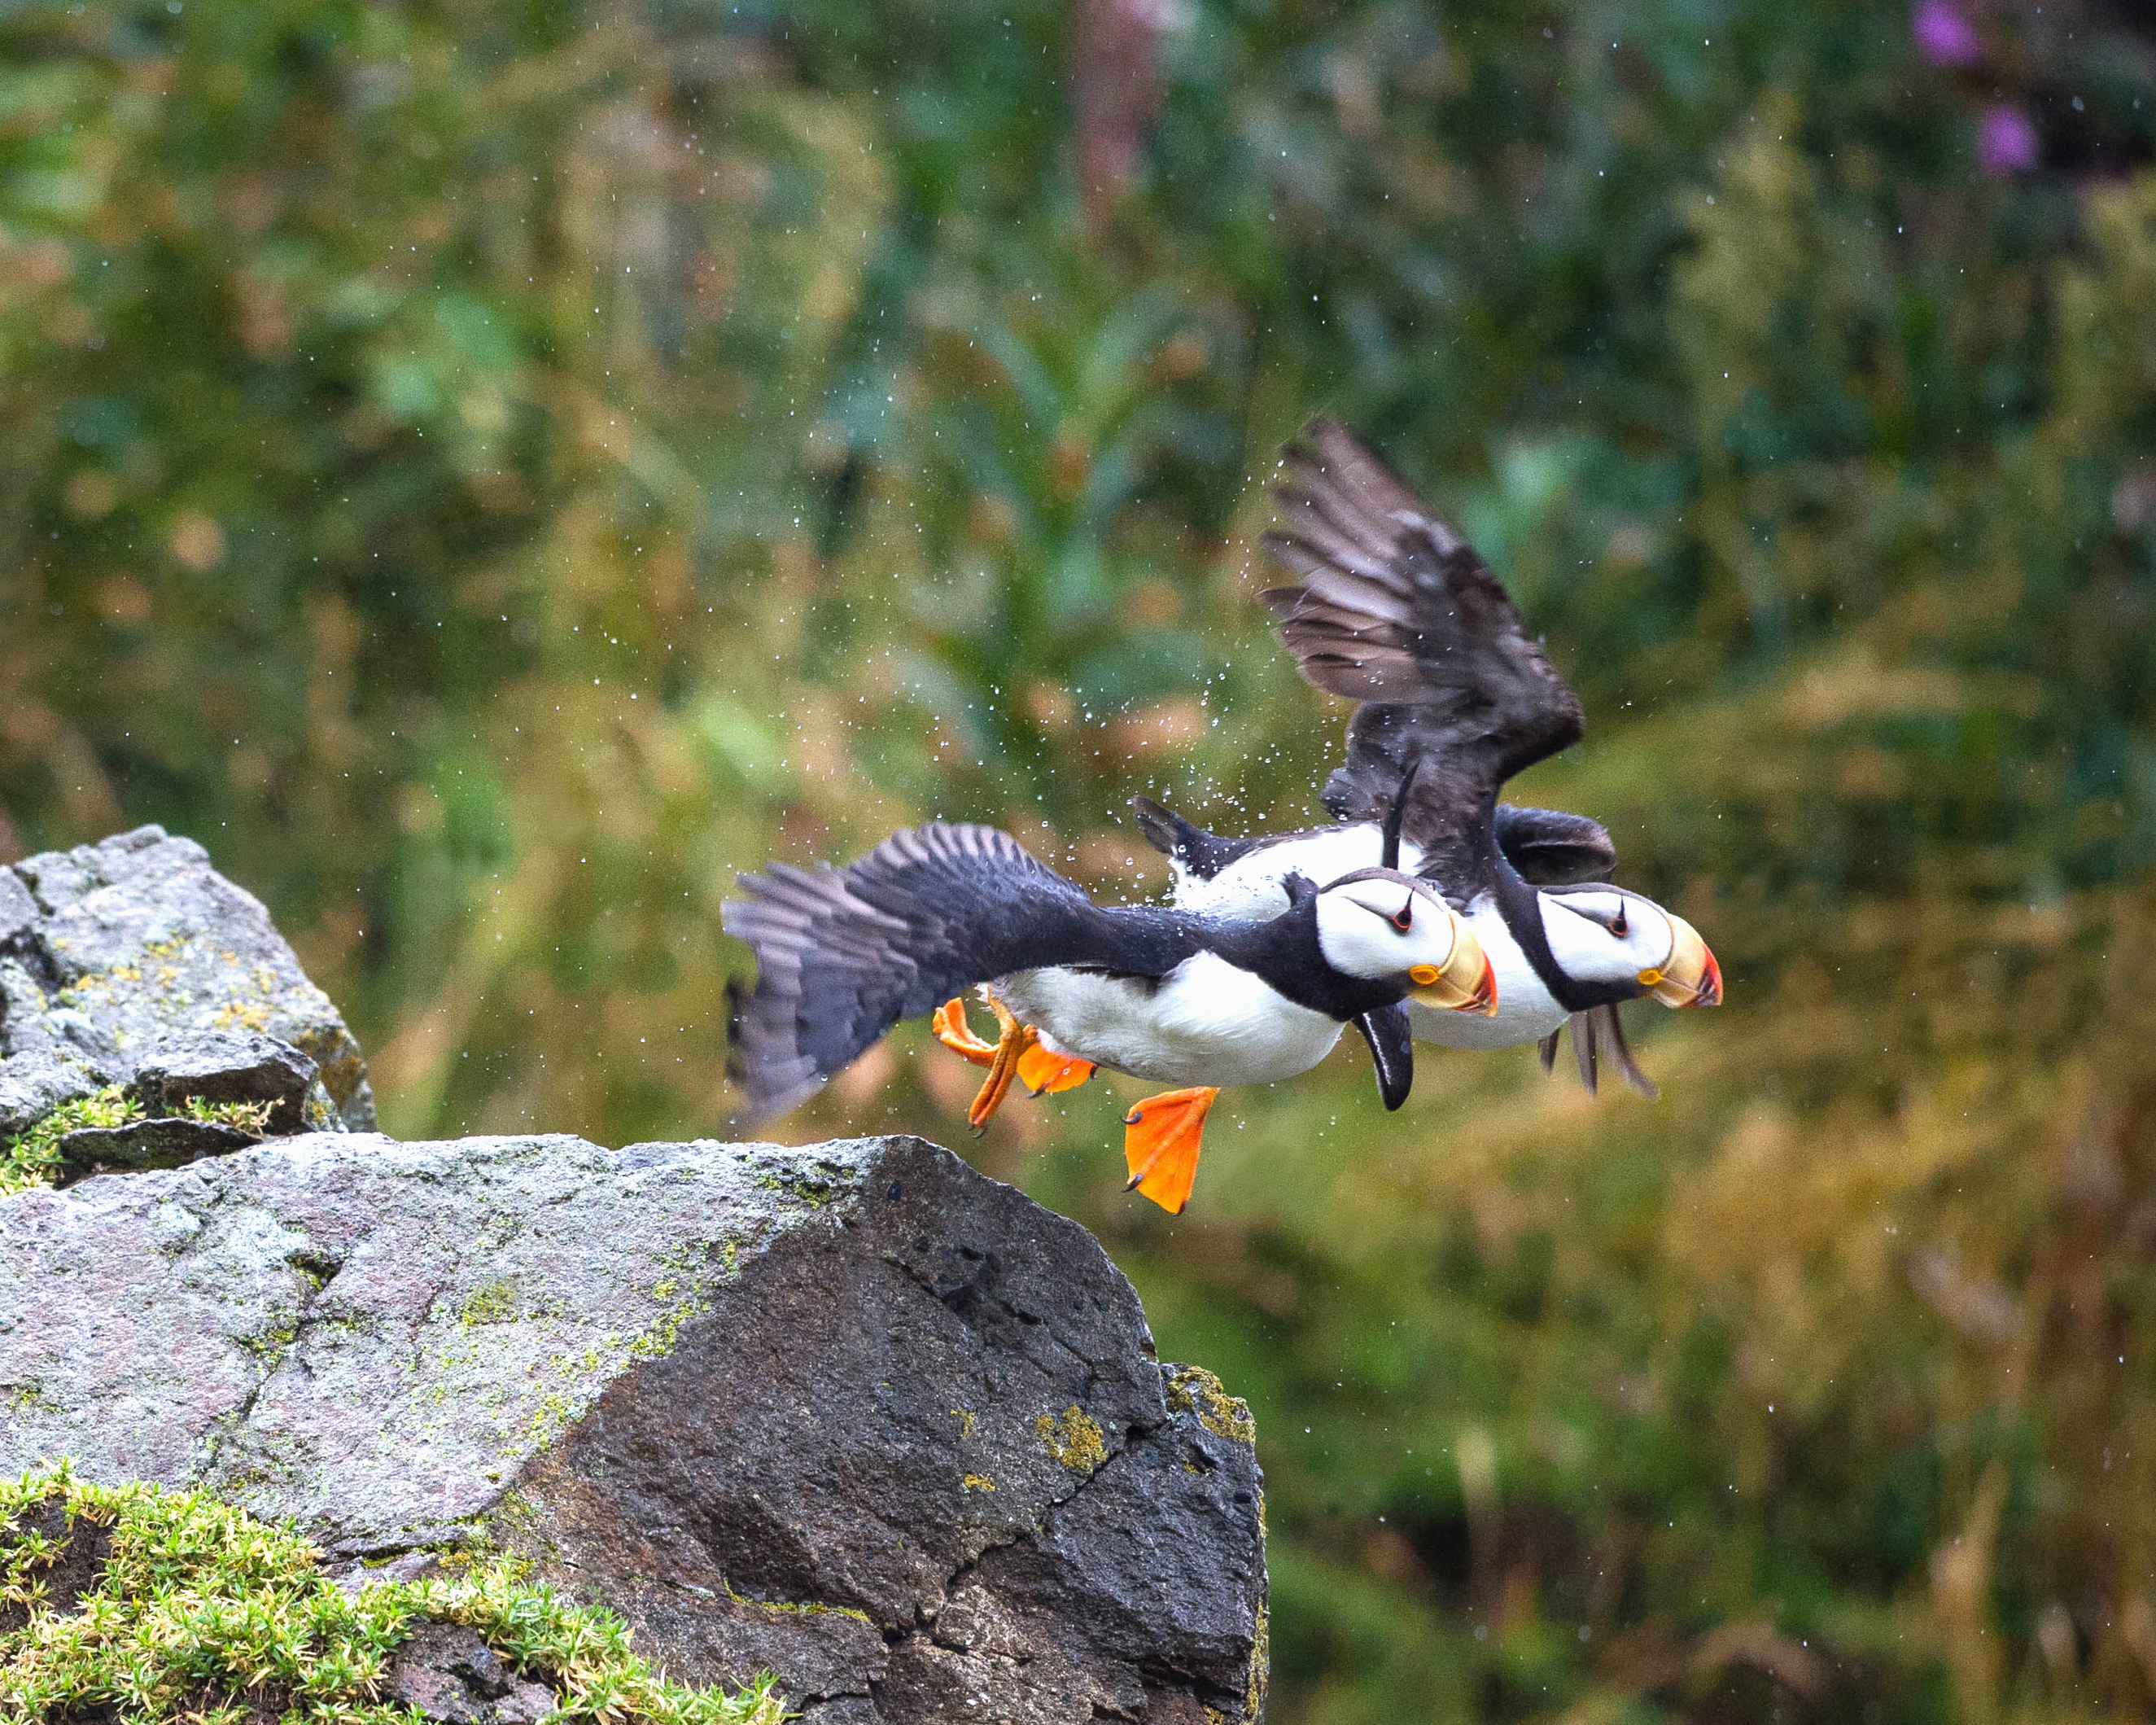 Low light and steady rain lead to reader's dramatic photo of puffins taking flight